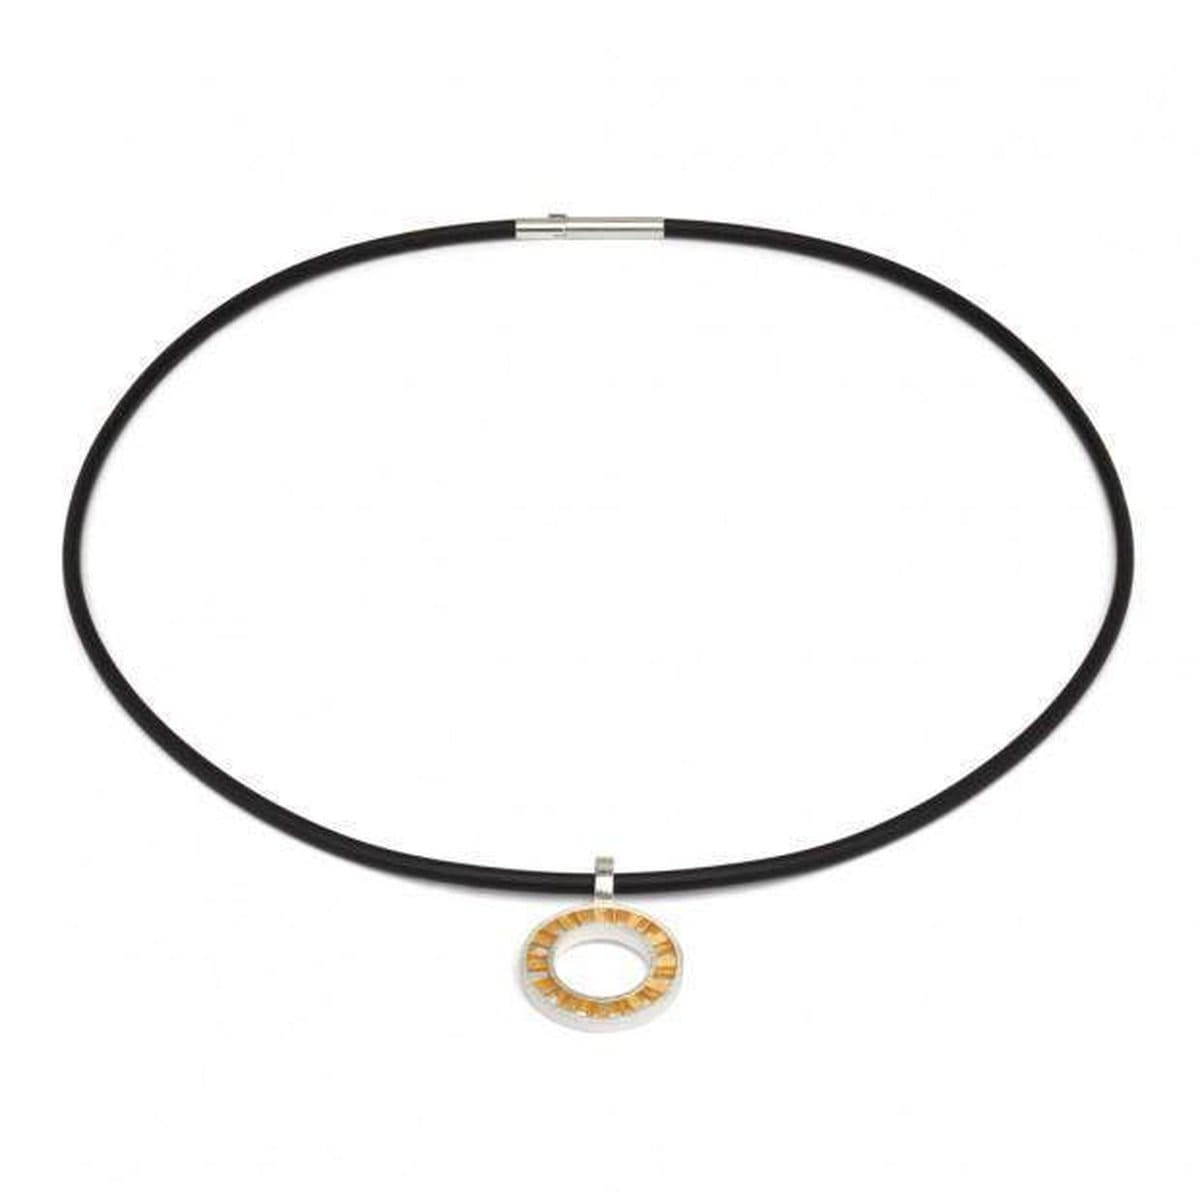 Roundabout Bicolor Necklace - 85375584-Bernd Wolf-Renee Taylor Gallery